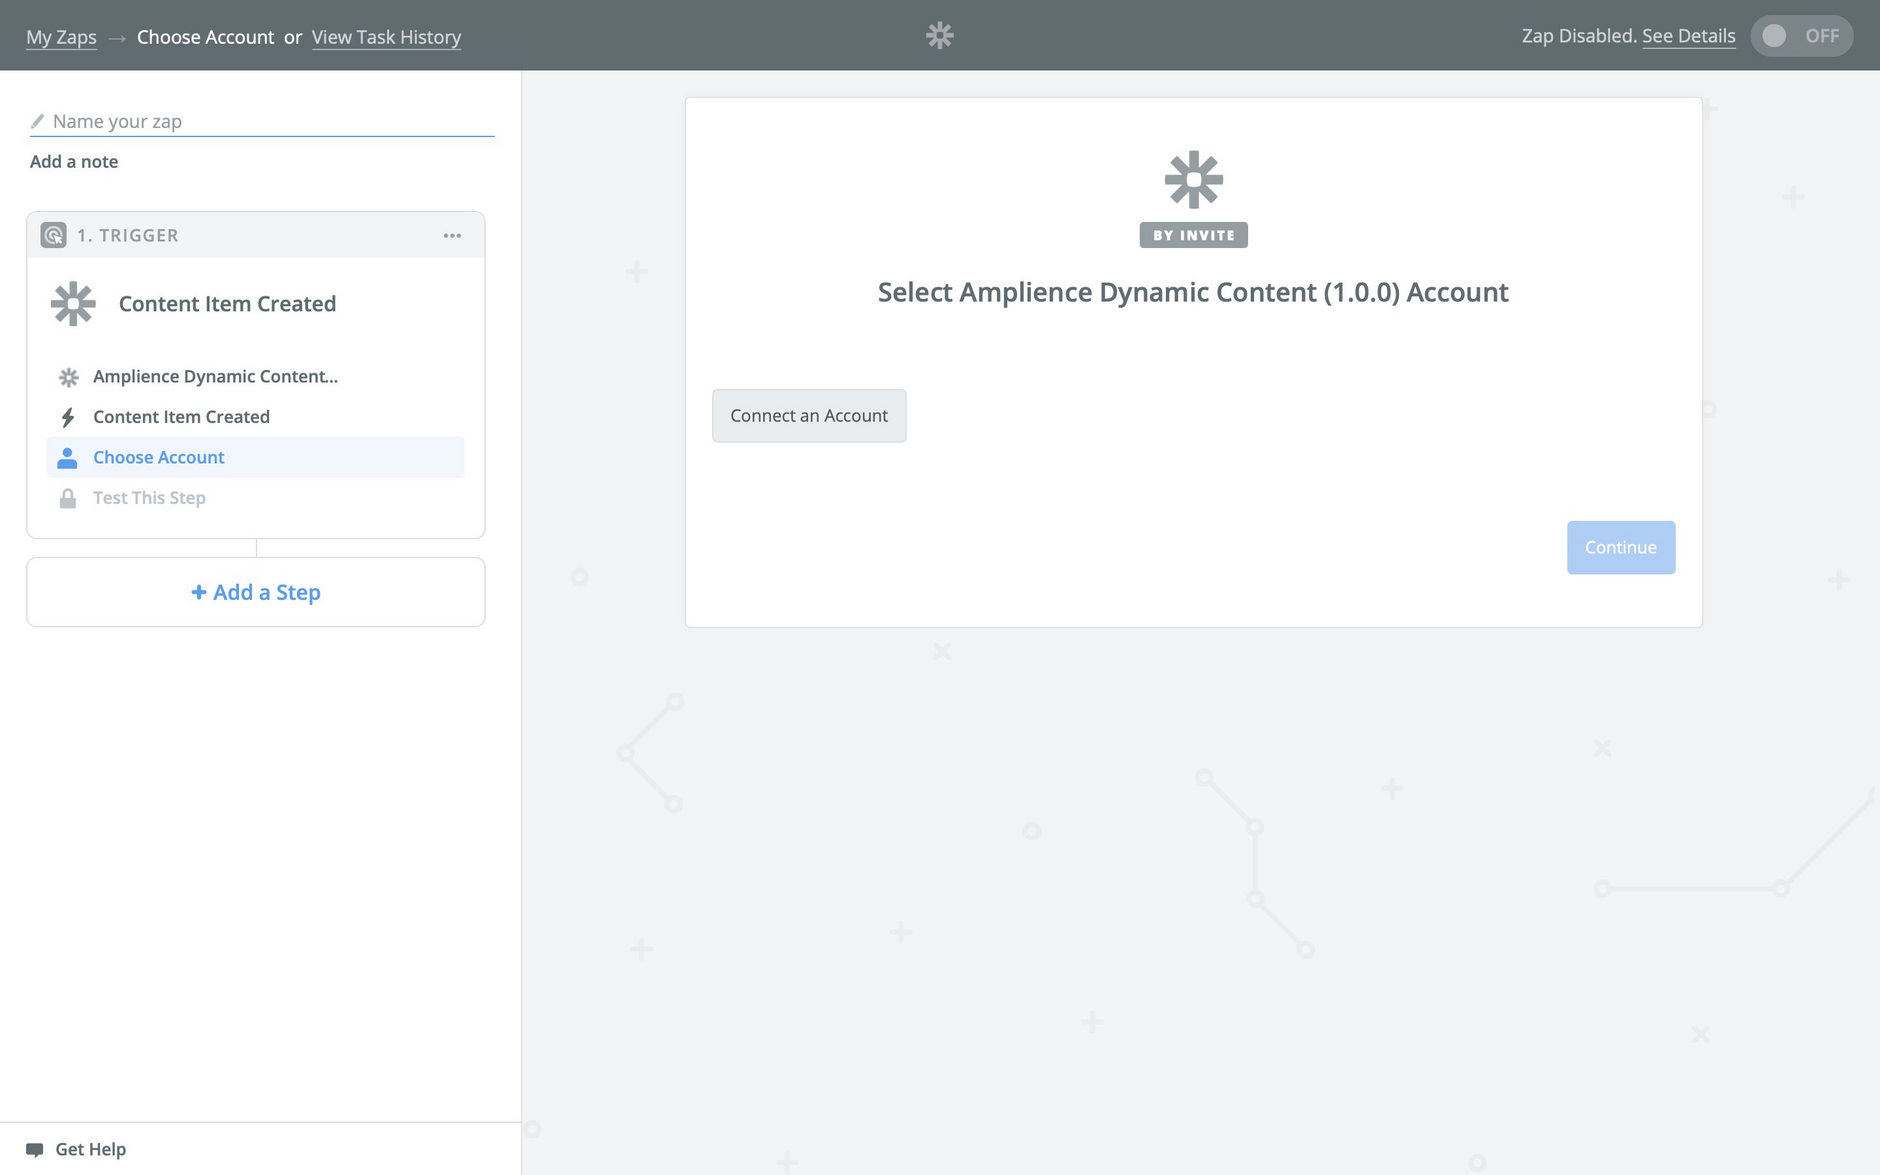 Click Connect account to connect to Dynamic Content